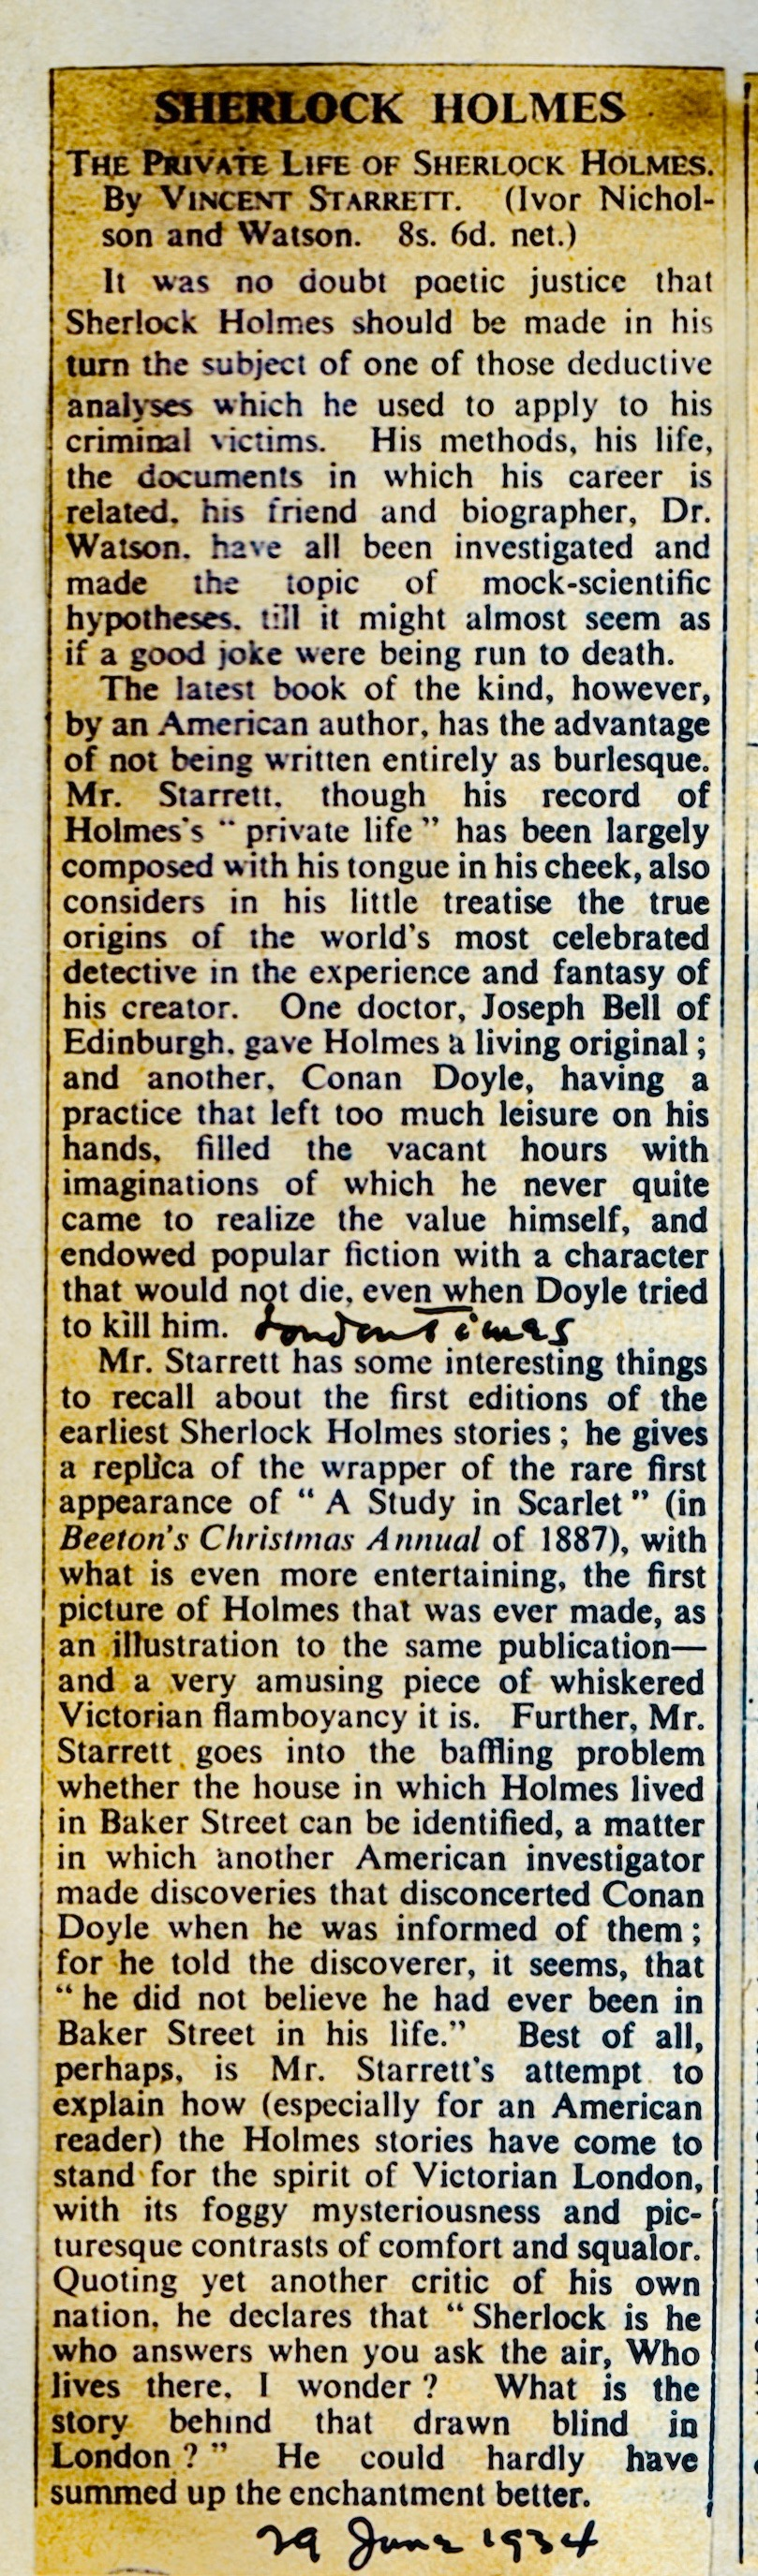 The full review from The Times of London, from Starrett's scrapbook.